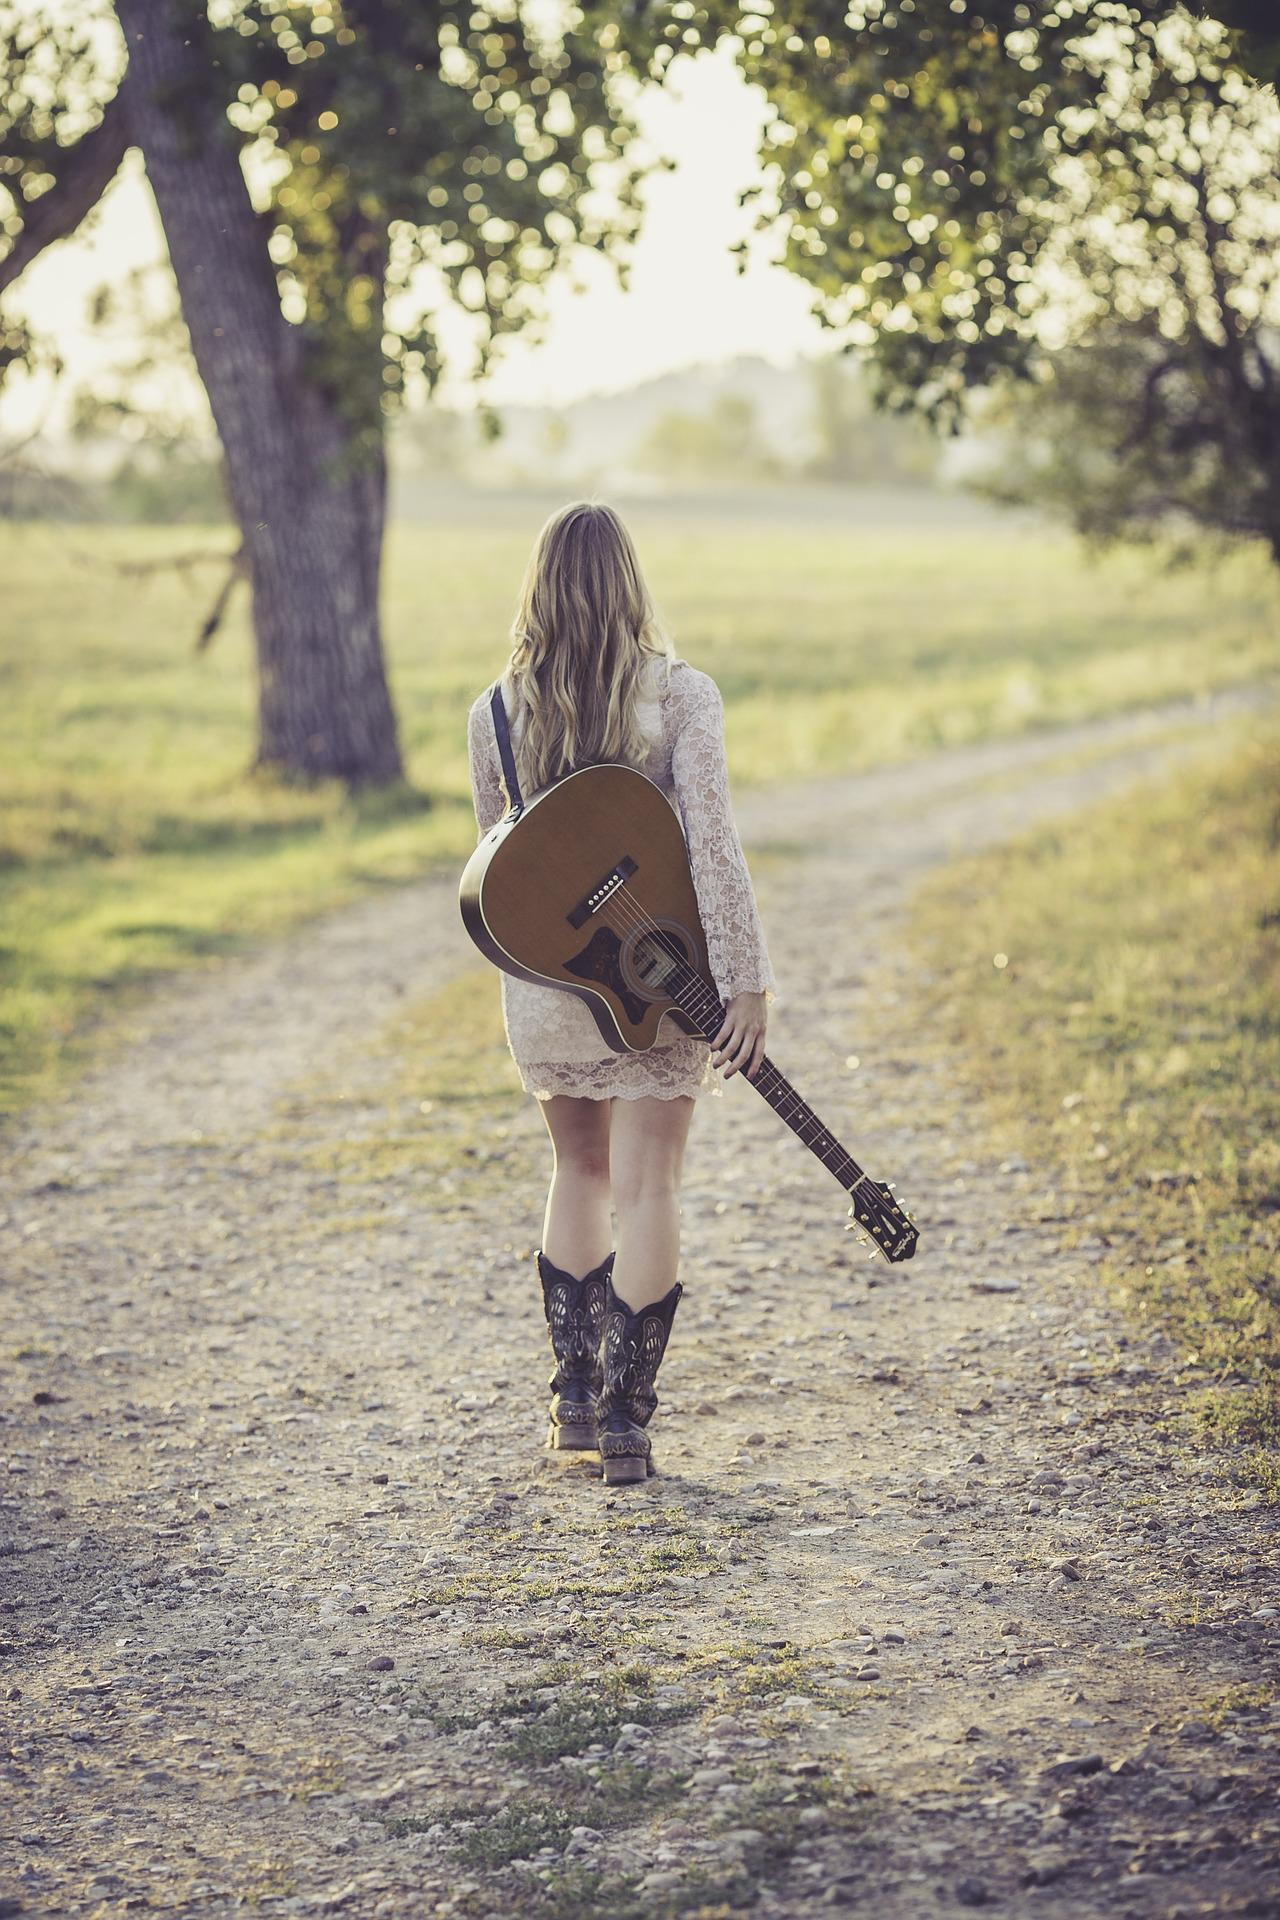 Girl with guitar  https://static1.squarespace.com/static/5a2a6968cd39c3b1cd28b7c6/t/5ce0c9bc3e2672000190ef39/1558235581673/guitar-946701_1920.jpg?format=1500w